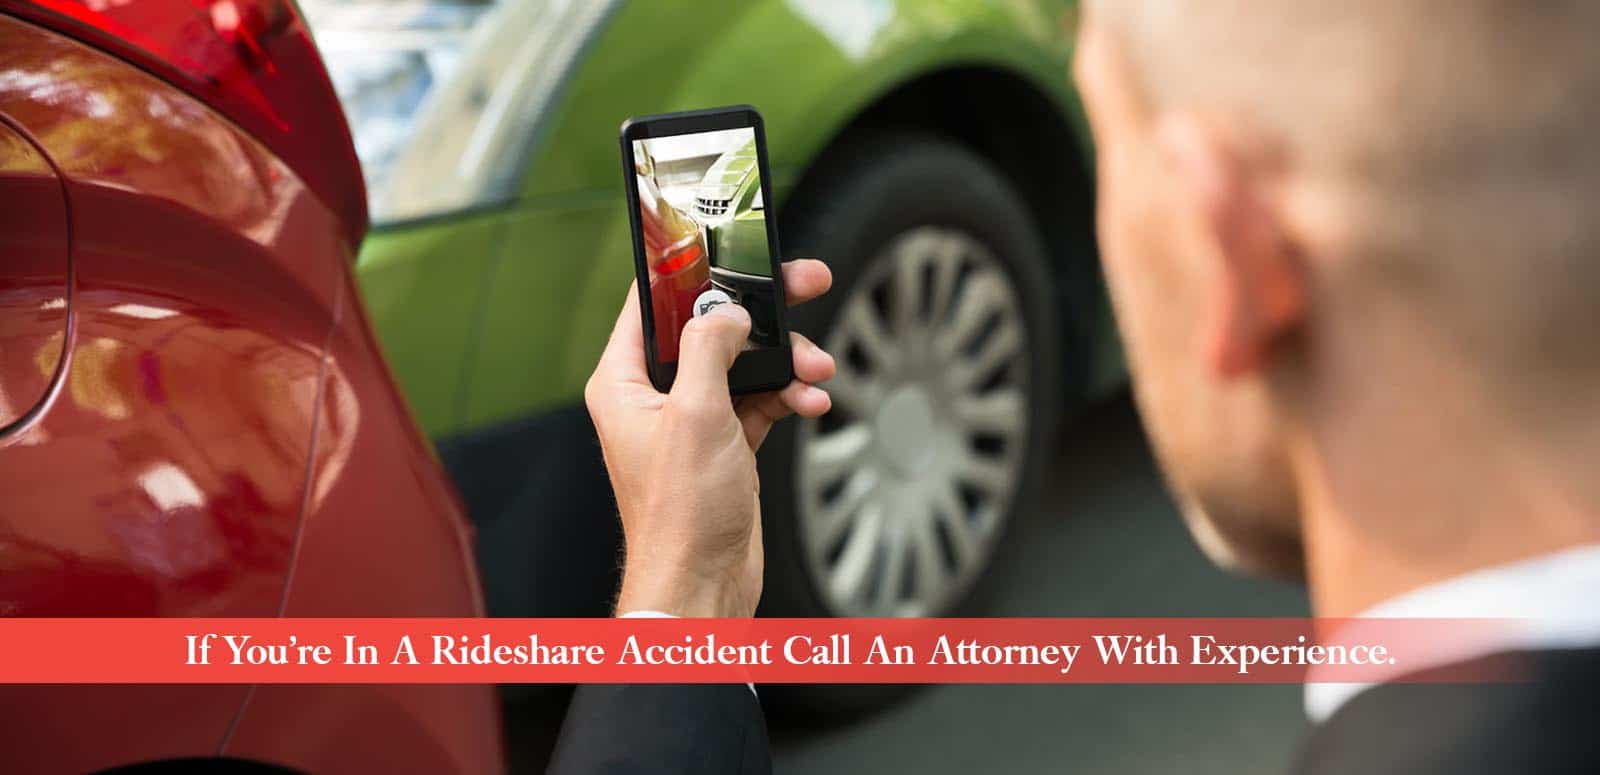 If you're in a rideshare accident Call An Attorney With Experience.